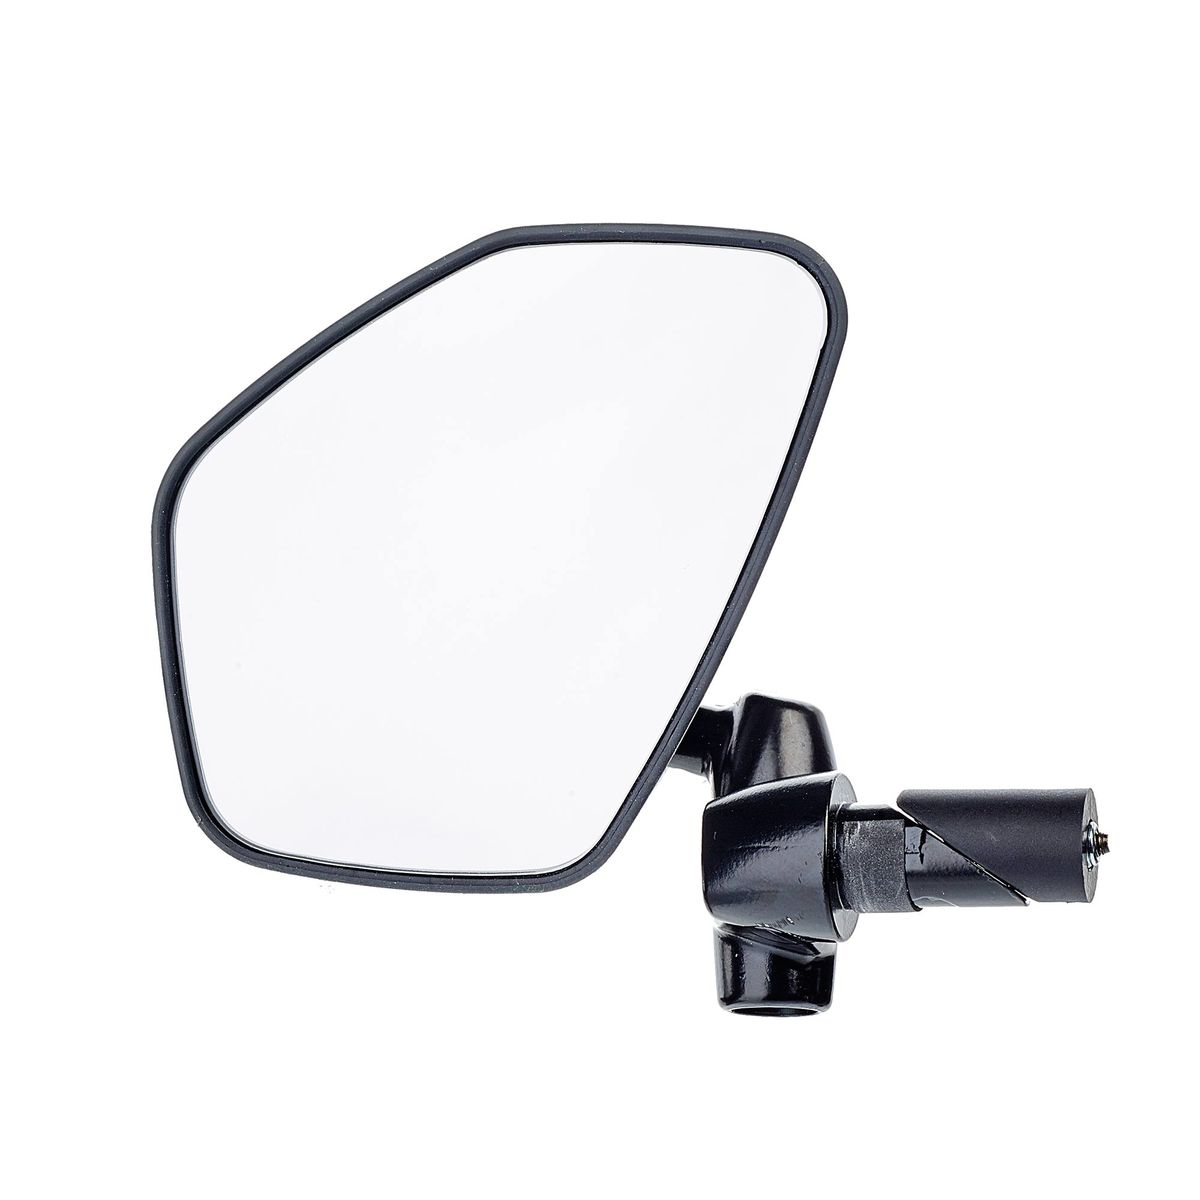 Bicycle Bike Aluminum Handlebar End Rear Rearview Back View Glass Mirror New